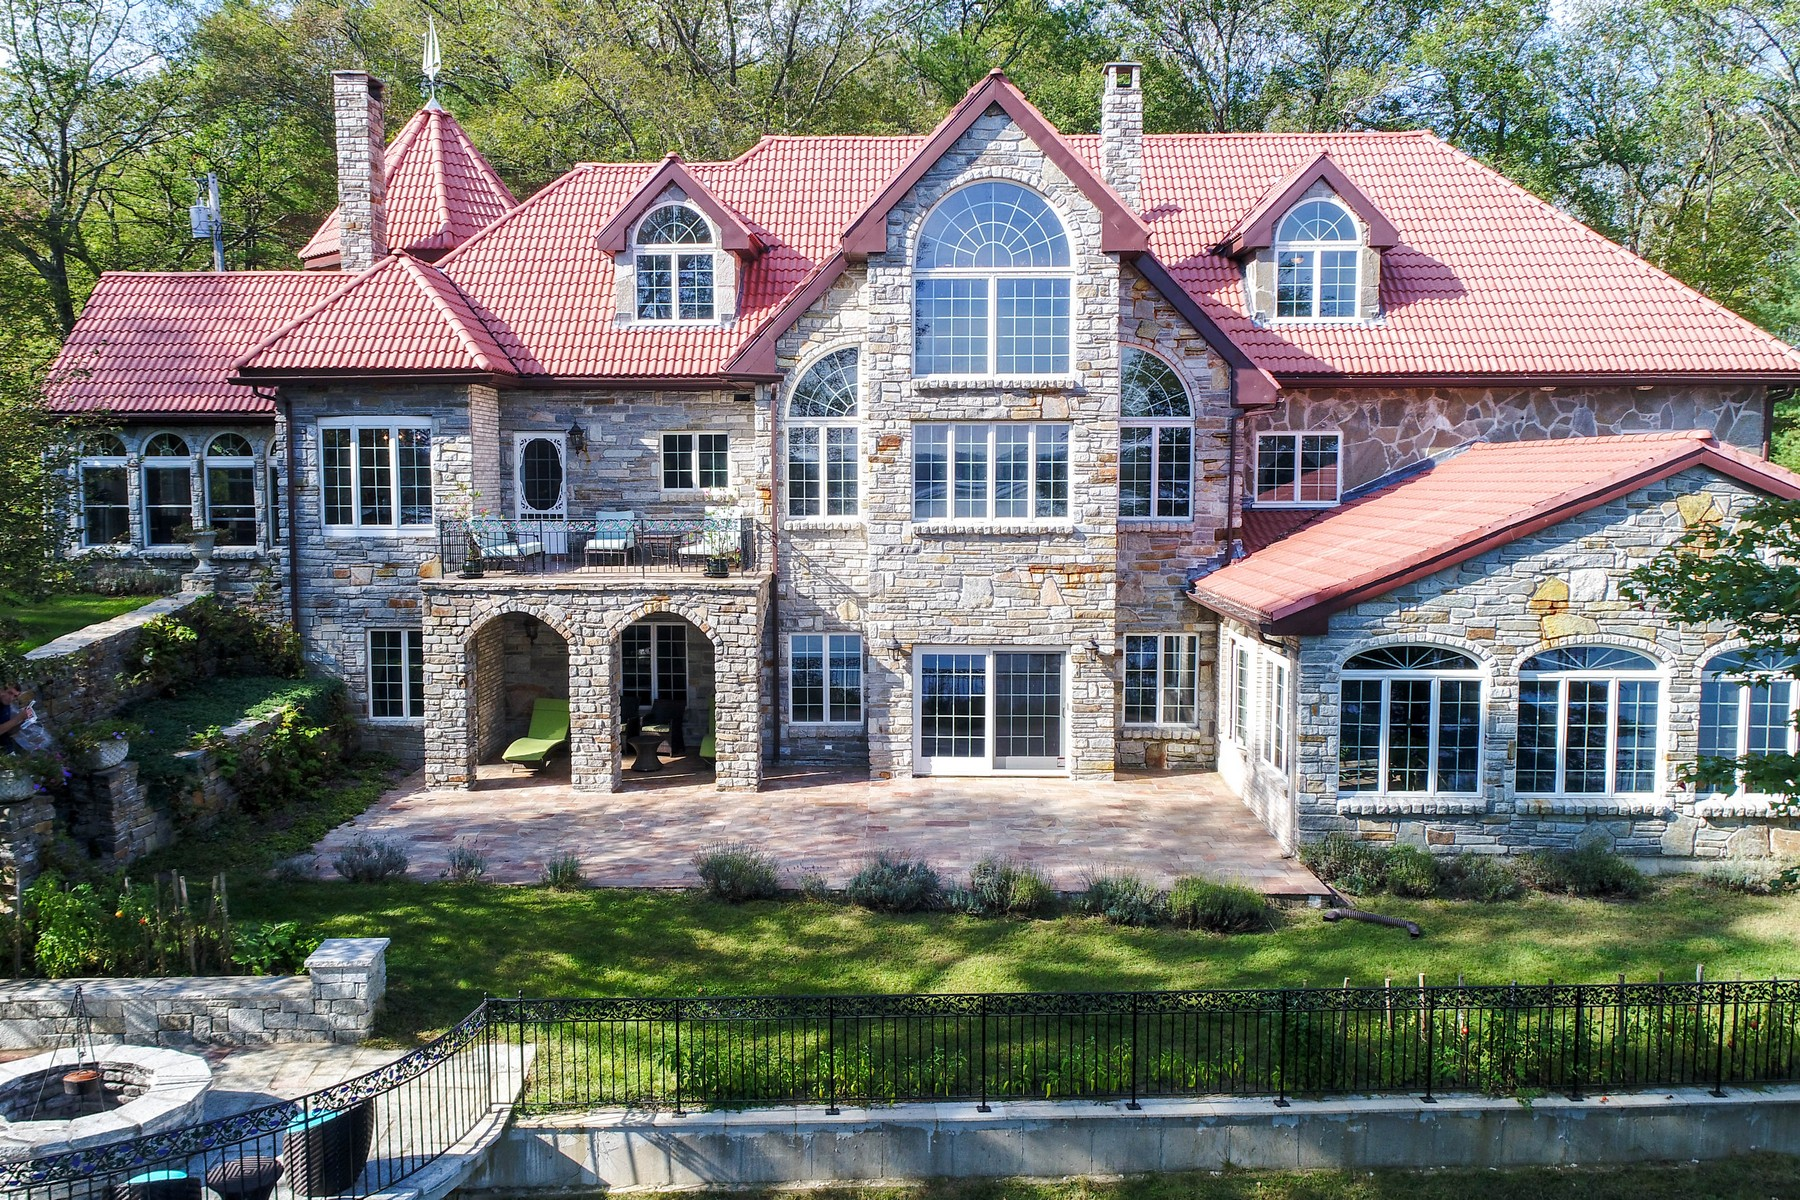 独户住宅 为 销售 在 Exquisitely Built Period Home 19 Hill Brook Drive West Brookfield, 马萨诸塞州 01585 美国